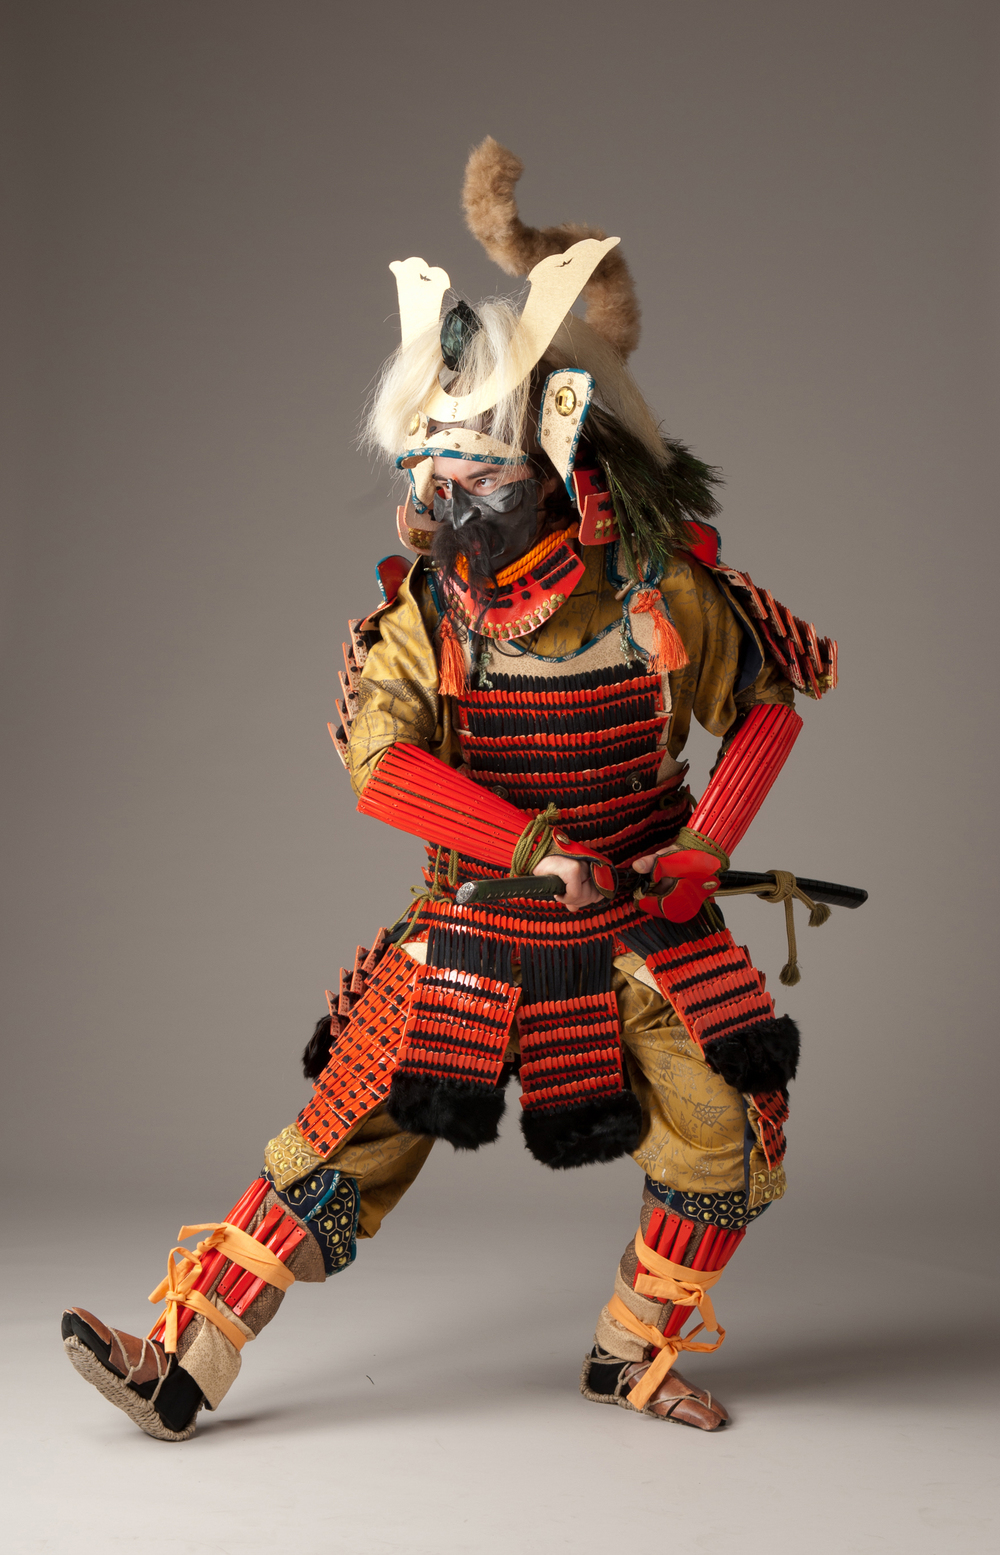 Samurai Costume Replica   Model: Remi Walsarie